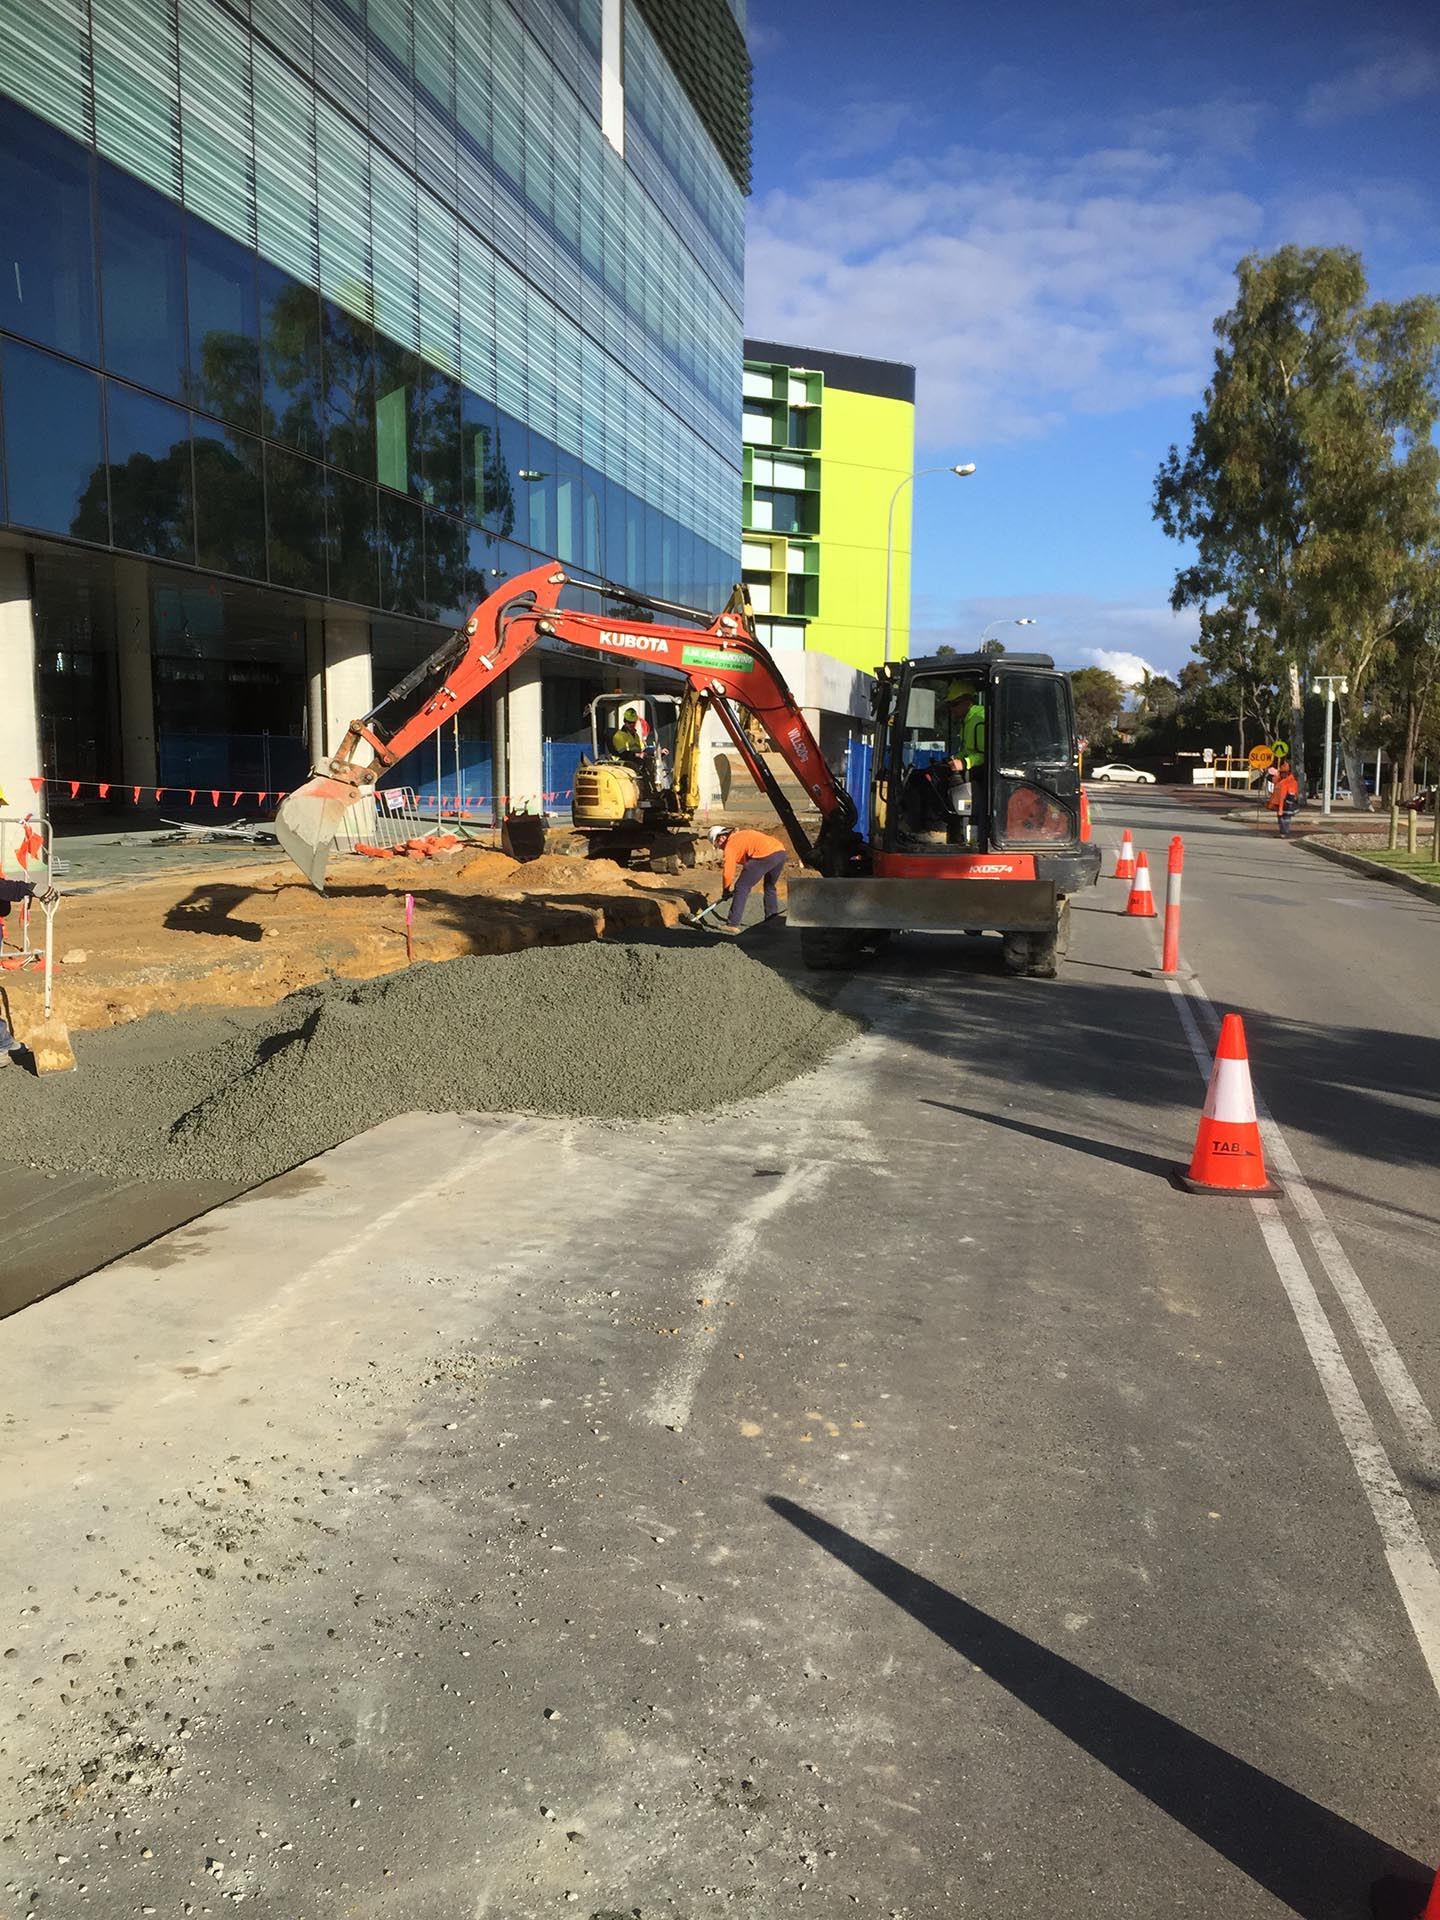 perth childrens hospital project a.m. earthmoving